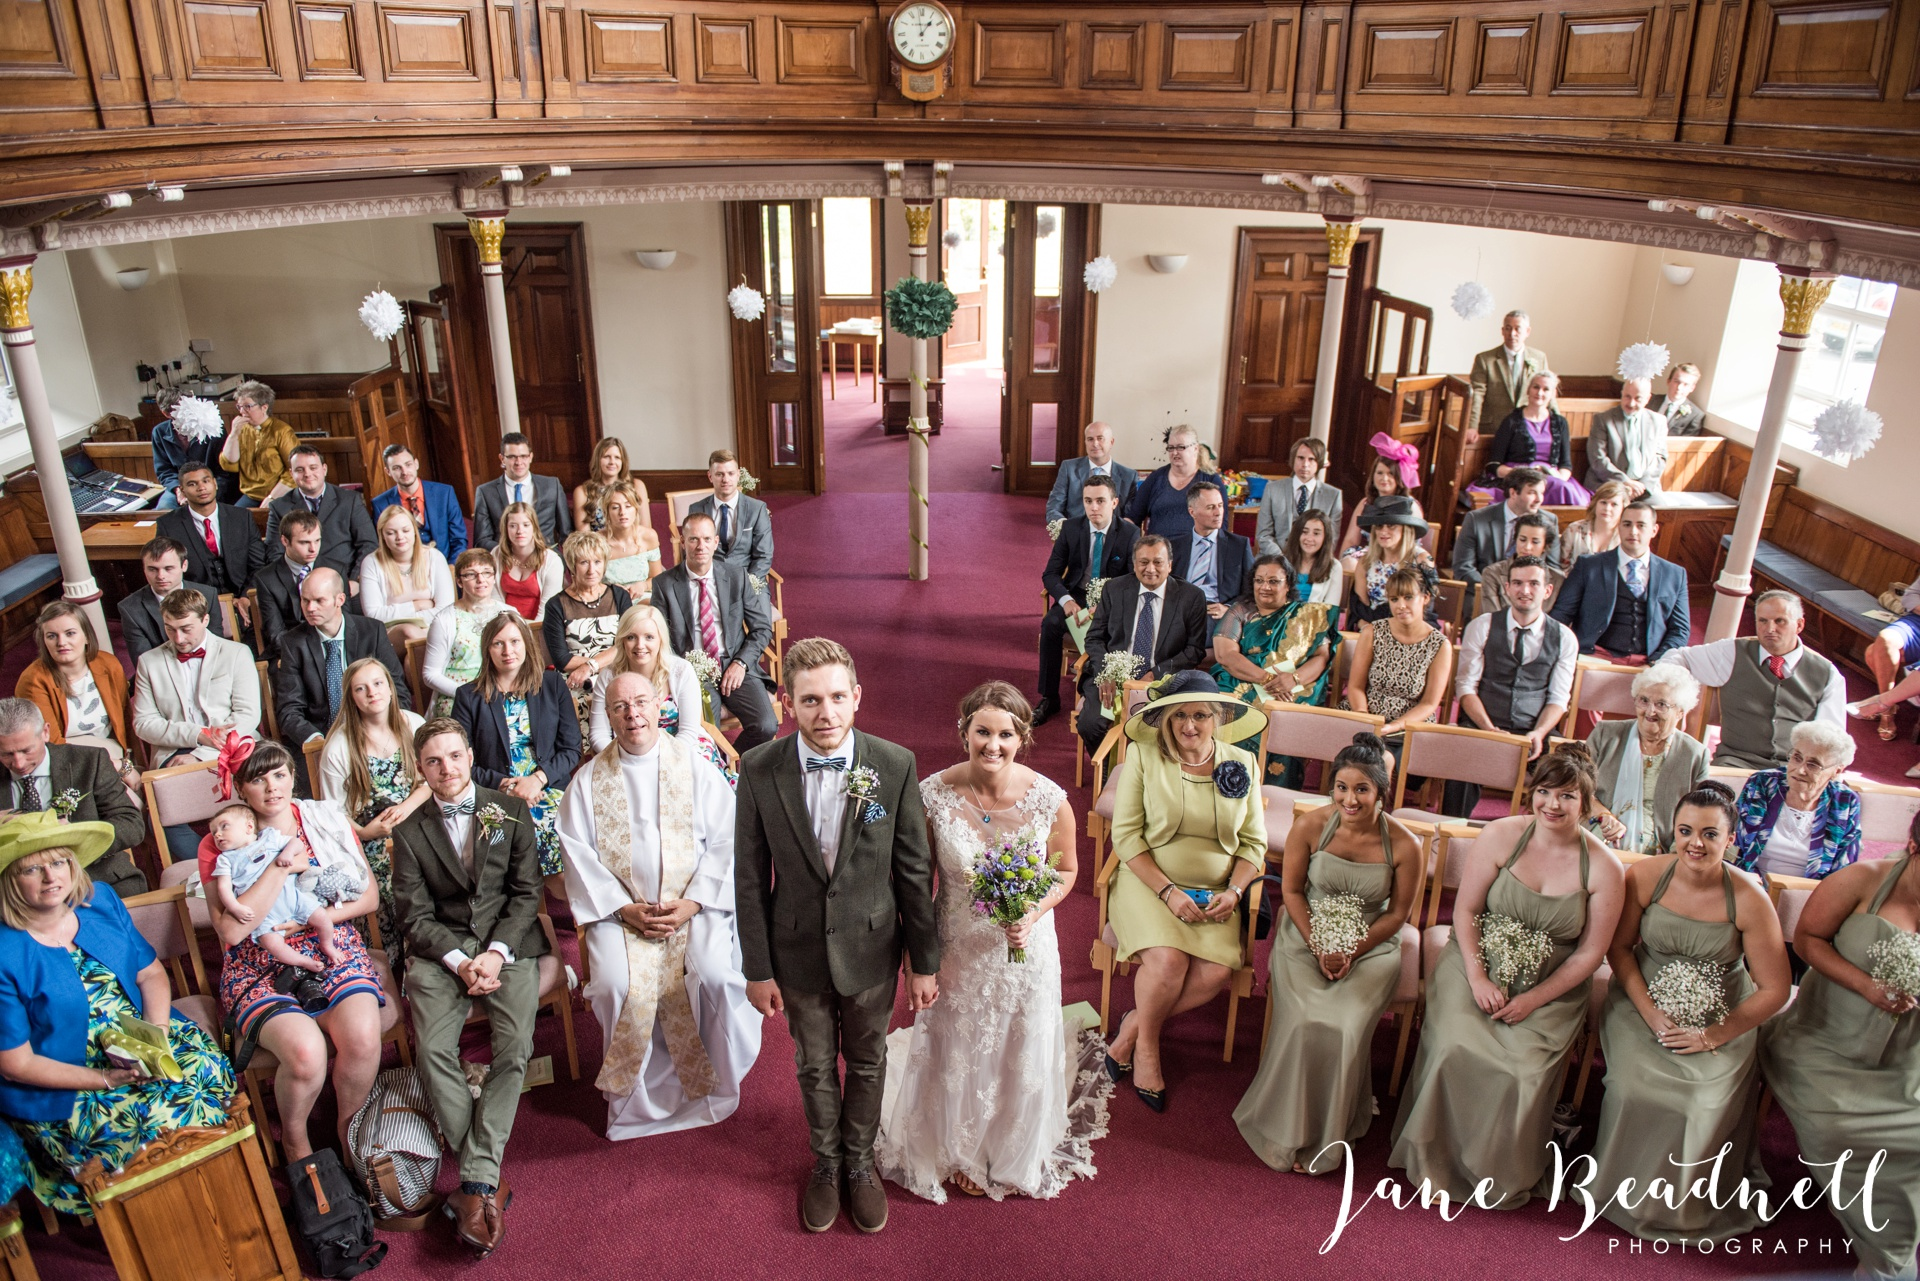 Jane Beadnell fine art wedding photographer The Old Deanery Ripon_0041